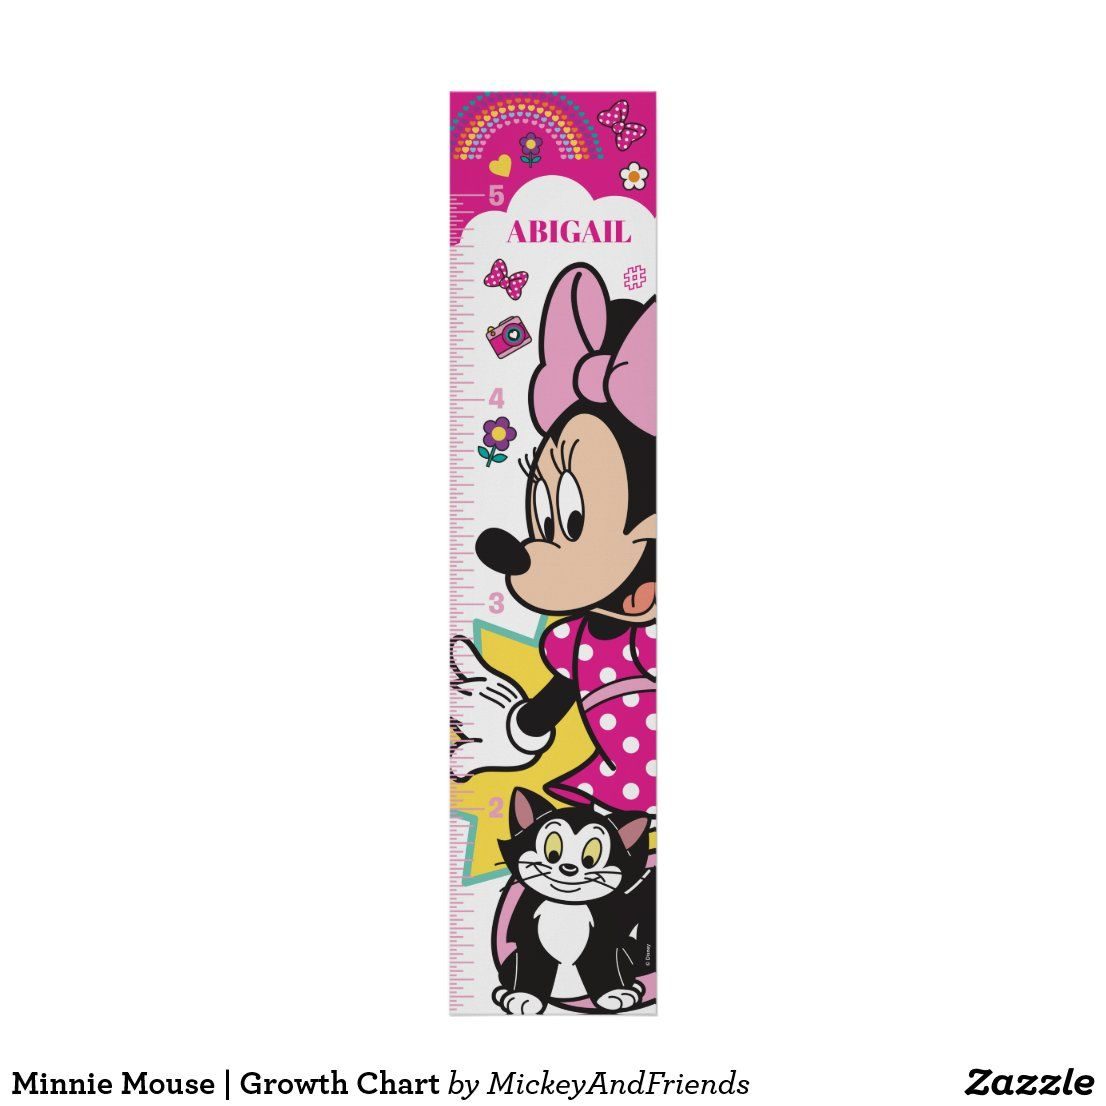 Minnie Mouse | Growth Chart in 2020 | Minnie mouse nursery ...